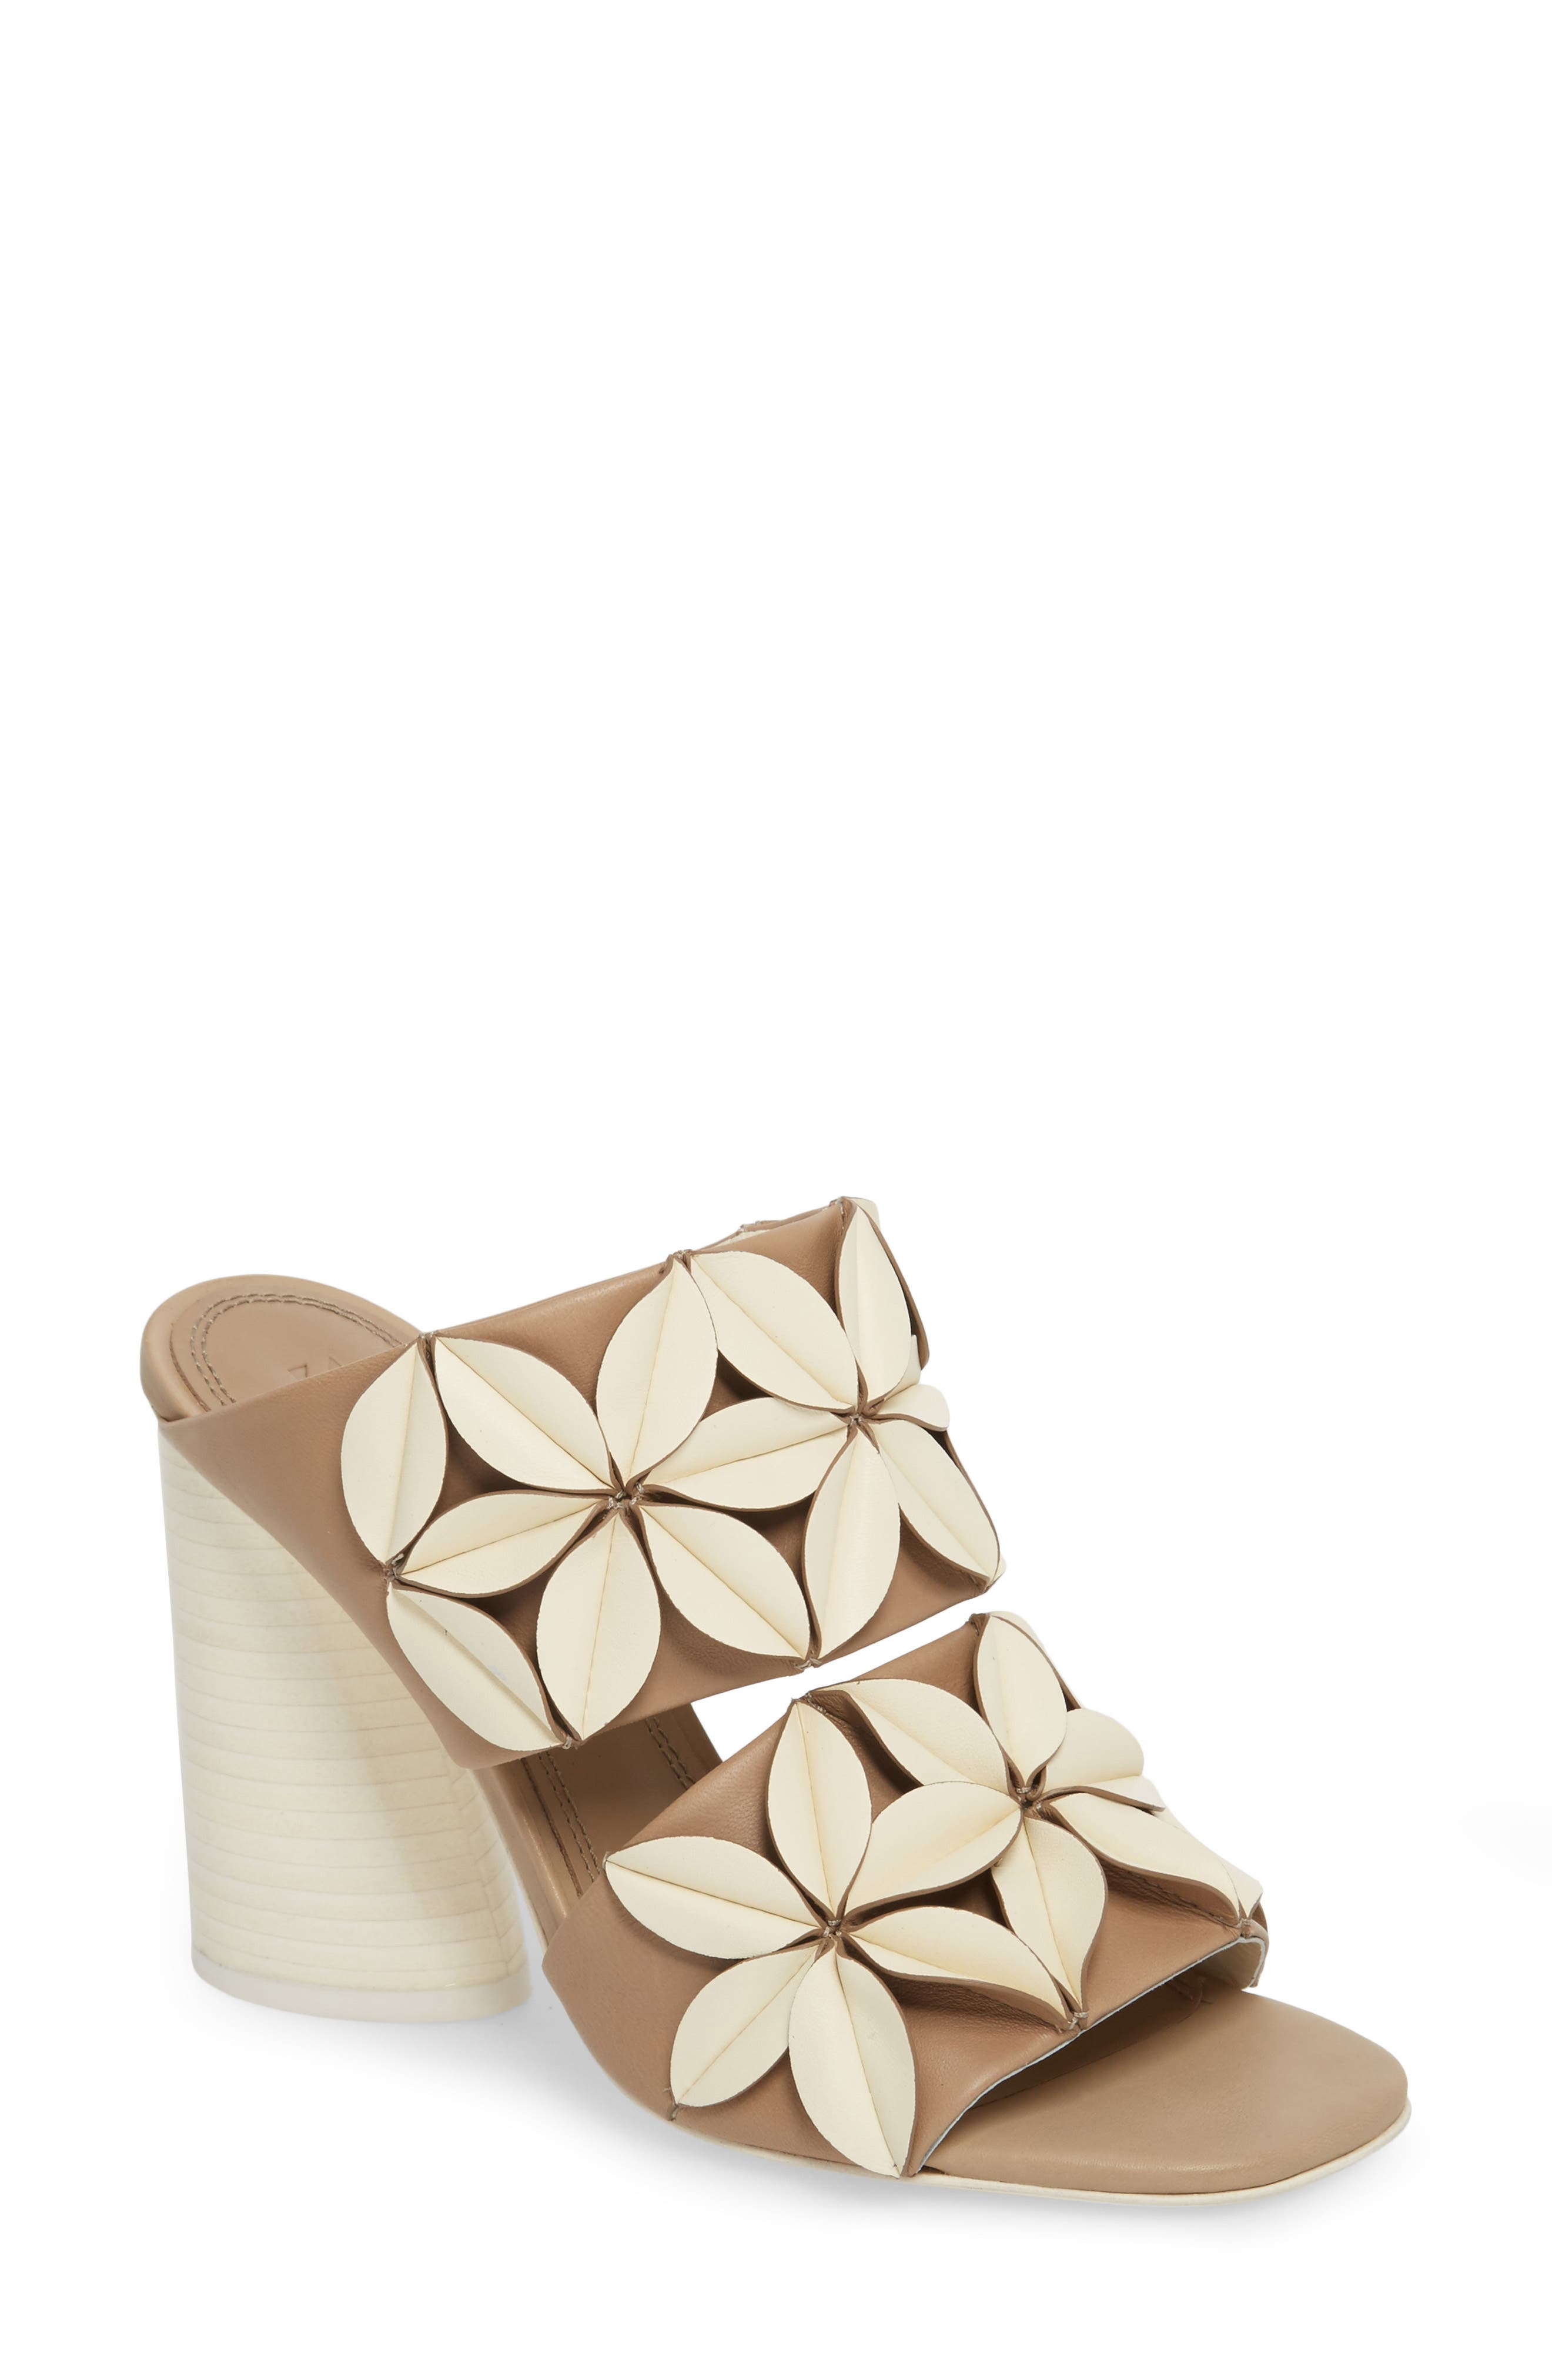 Mura Floral Embellished Mule,                             Main thumbnail 1, color,                             Ivory/ Taupe